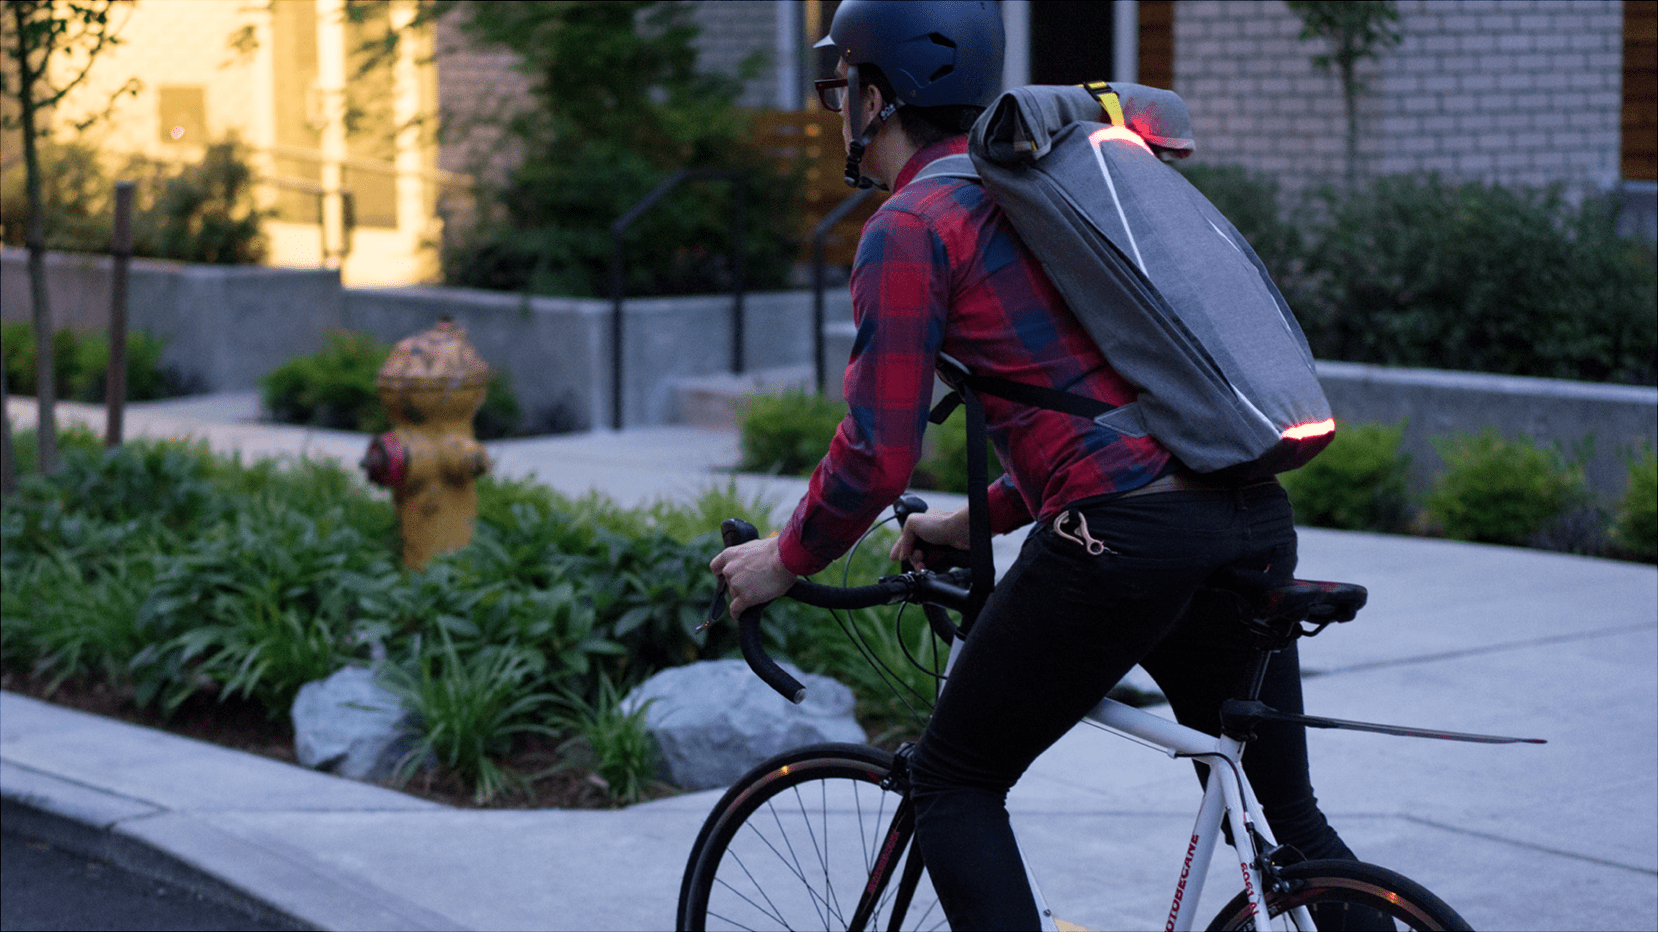 15 Fresh Lifestyle Gear + Bags for Design Nerds in 2015